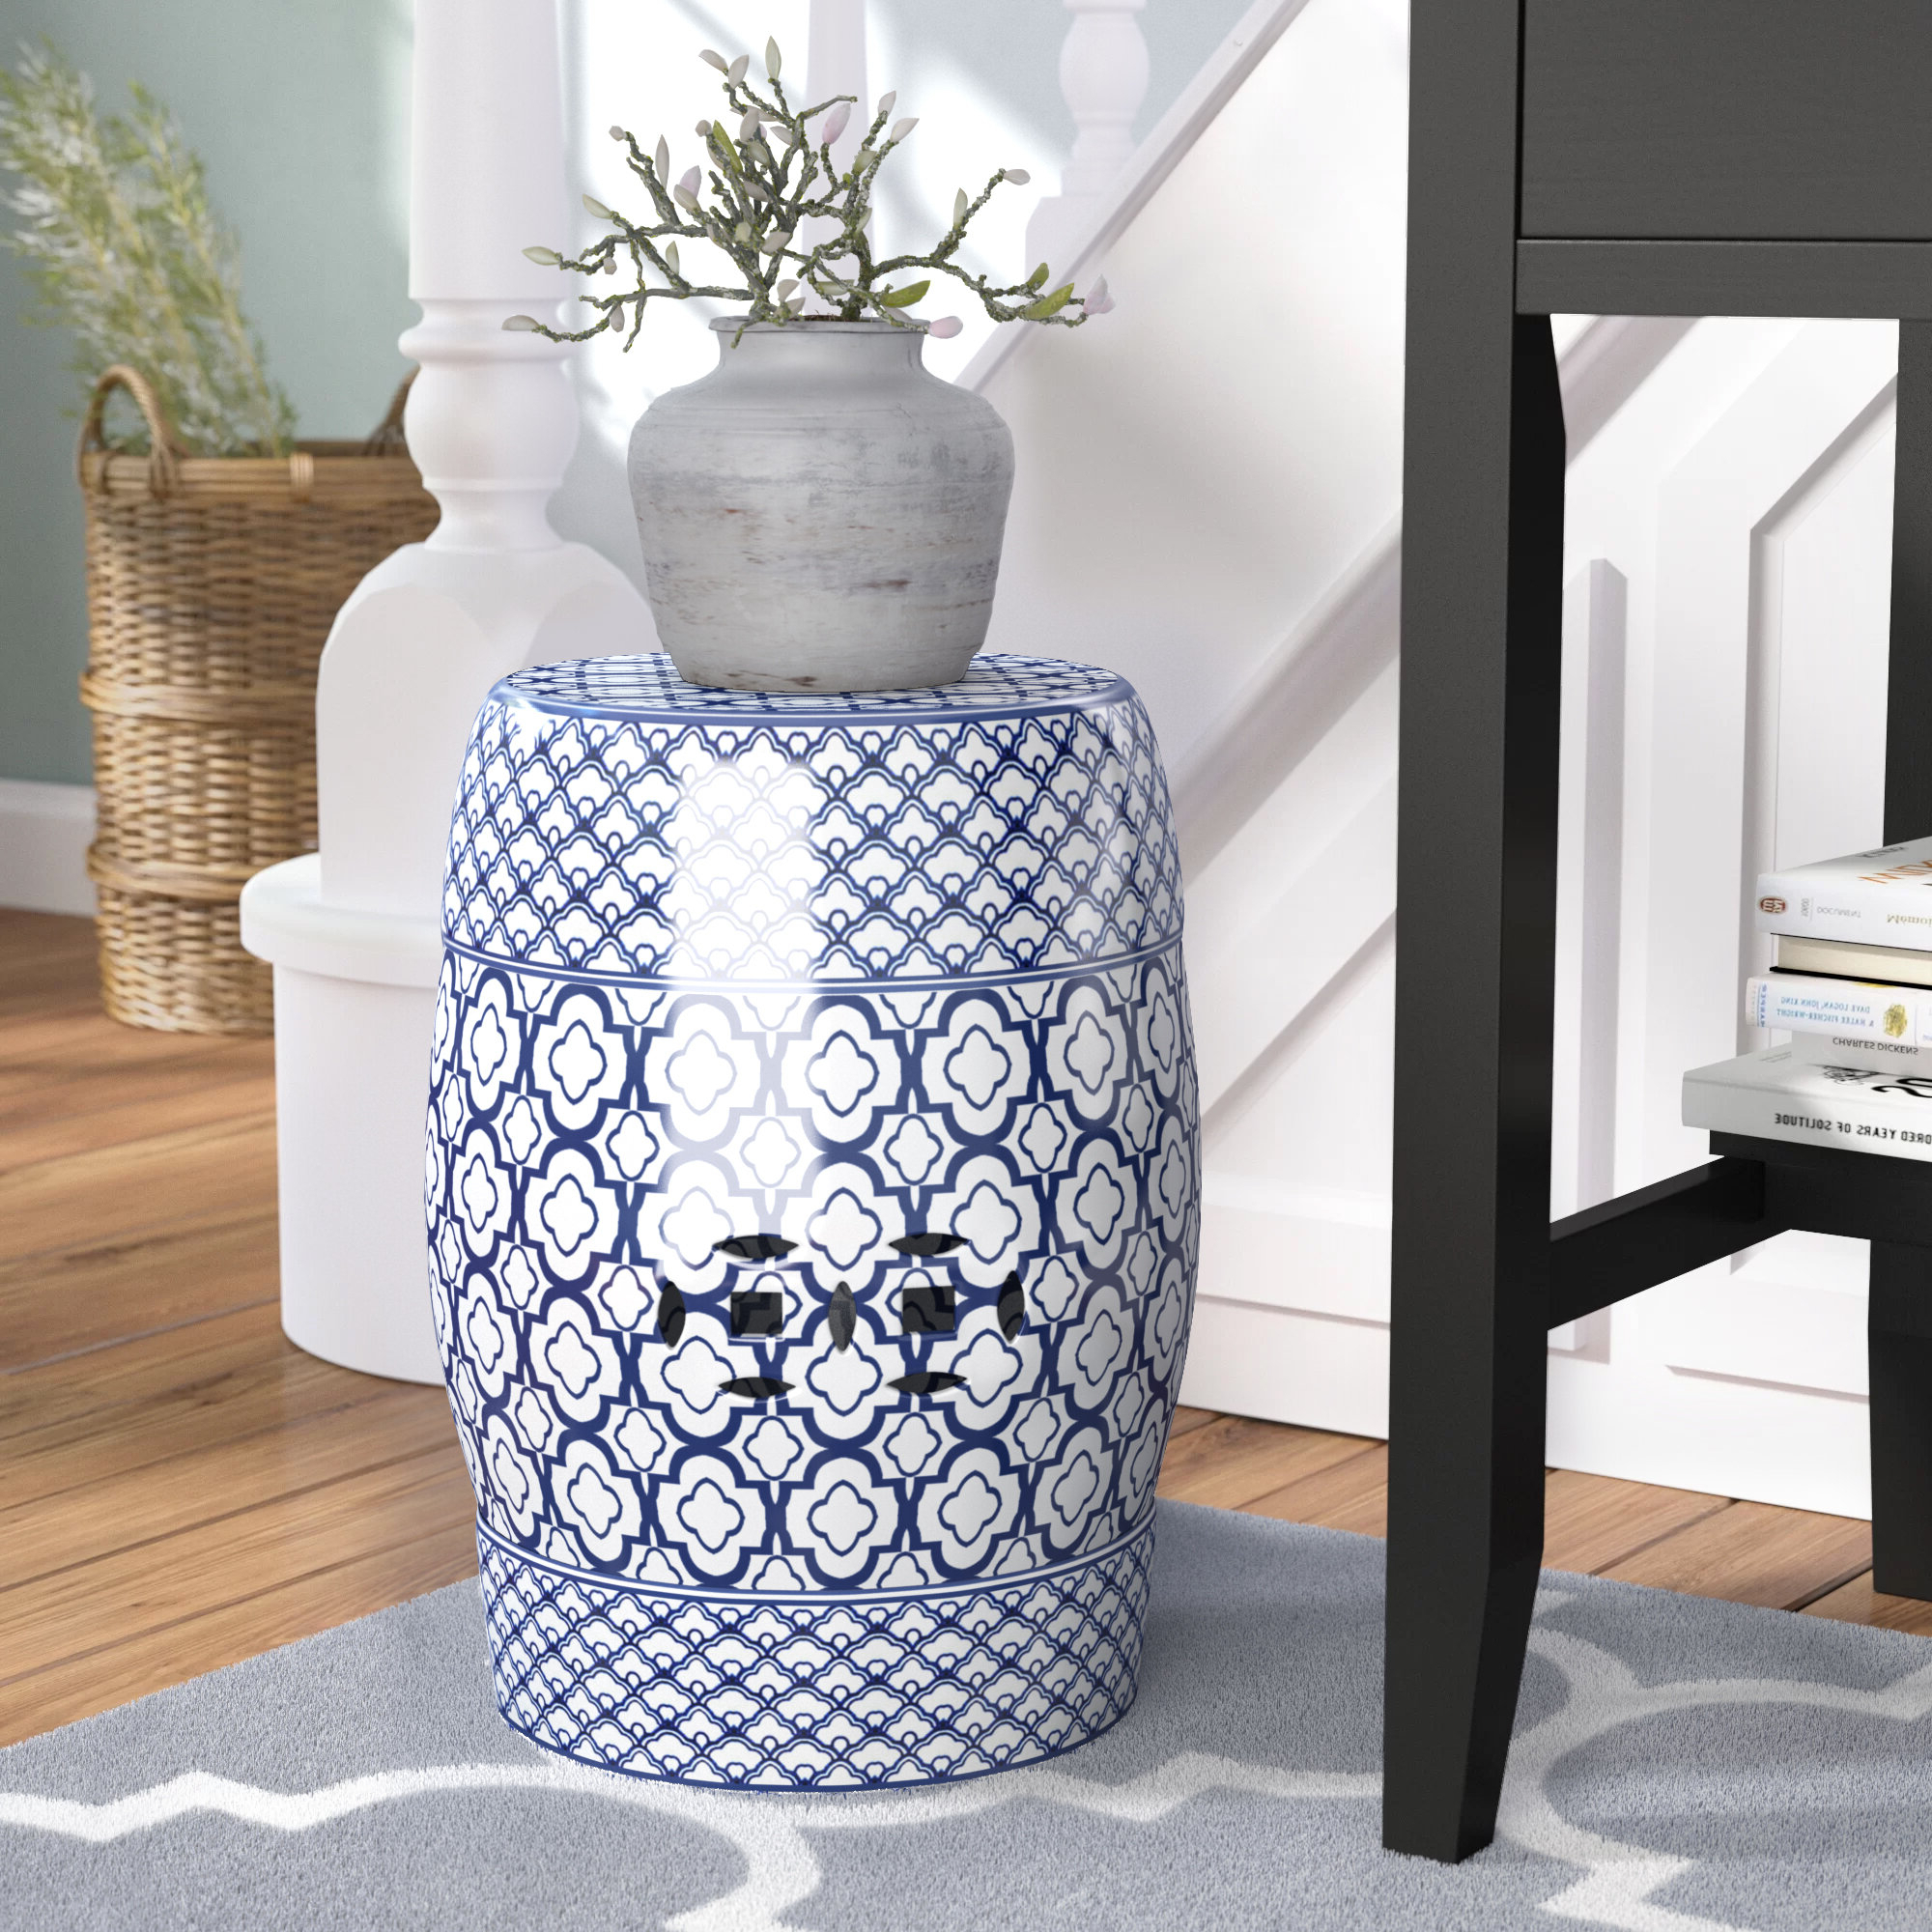 Fashionable Harwich Ceramic Garden Stools With Regard To Garden Stools (View 11 of 30)